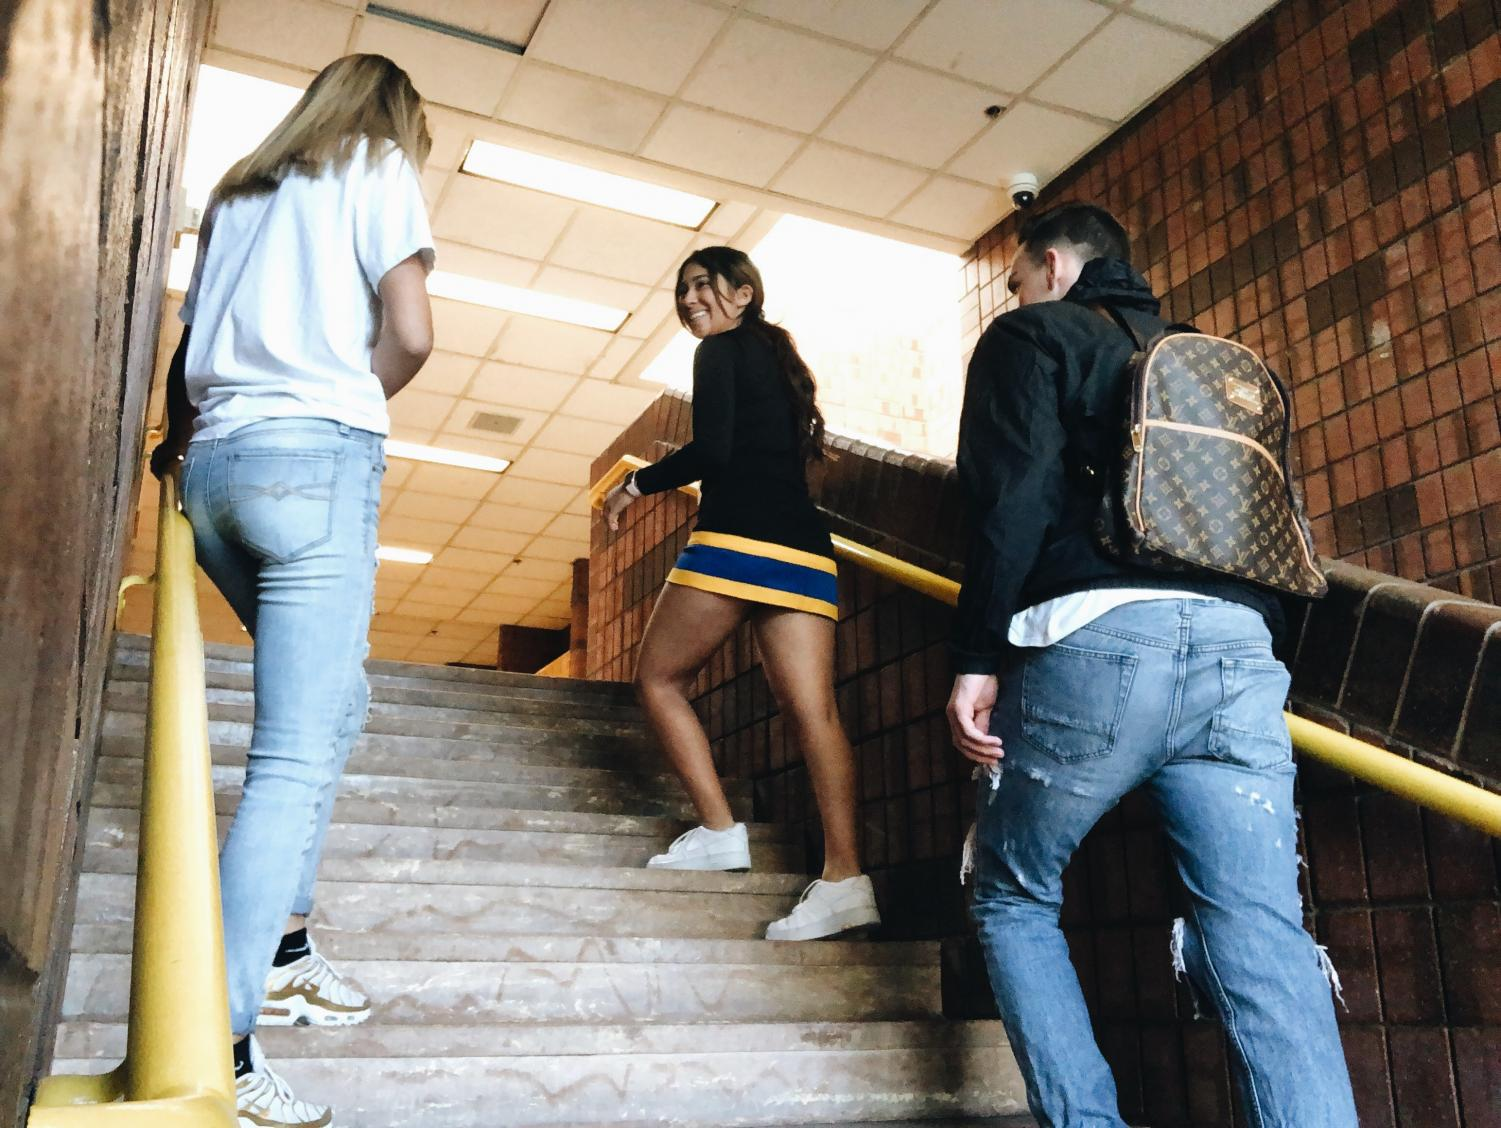 Students walking to class with their different choices of clothing.